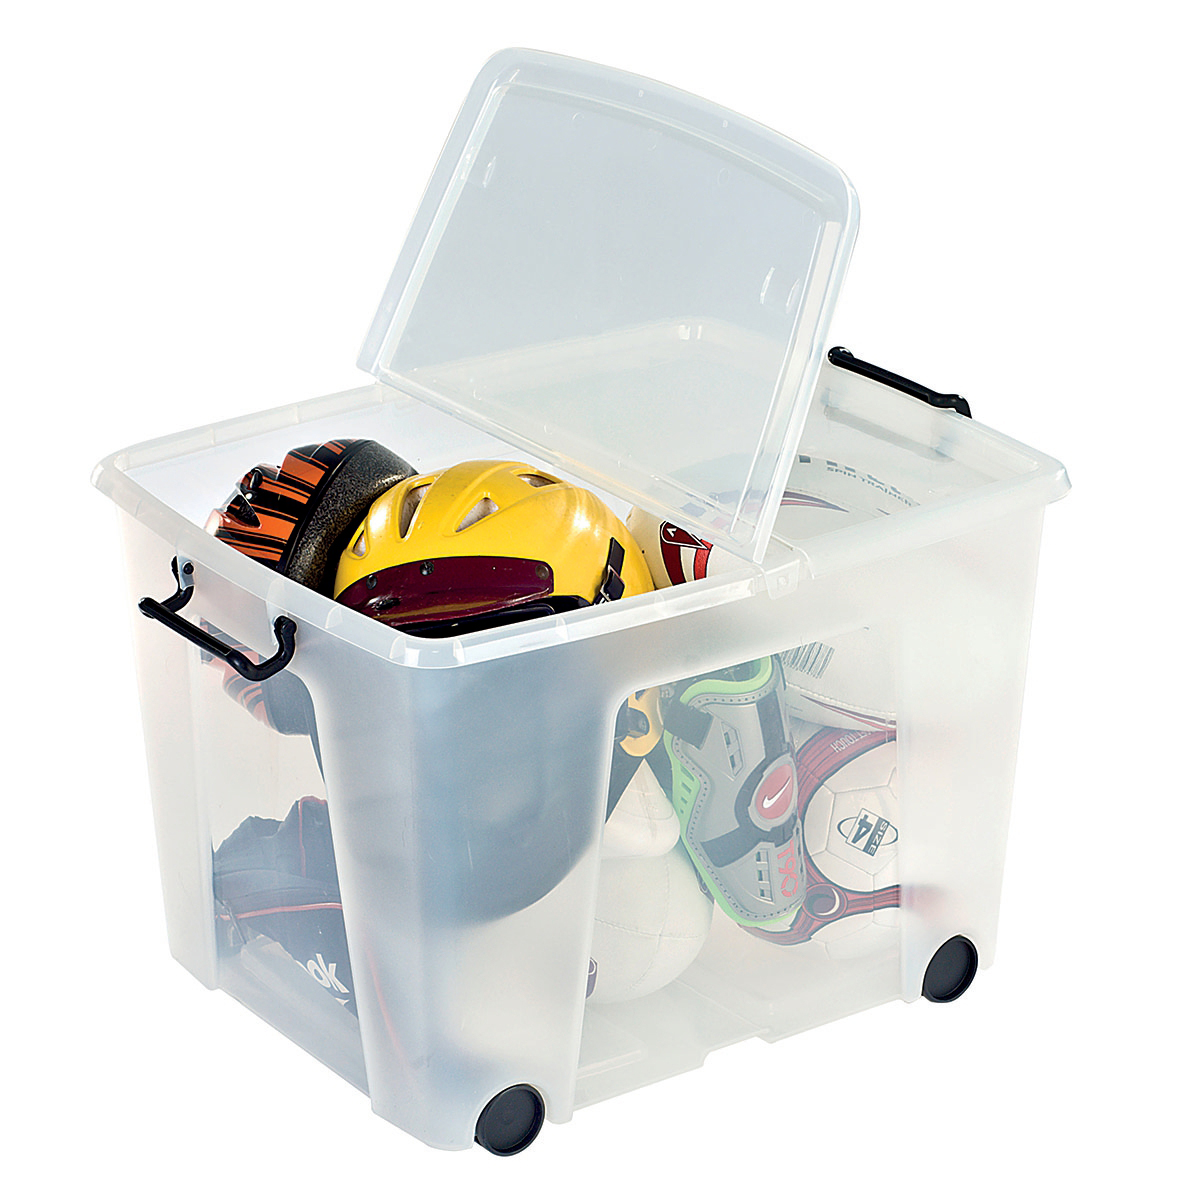 Containers Strata Smart Box Clip-On Folding Lid Carry Handles 75 Litre Clear with Black Wheels Ref HW676CLR